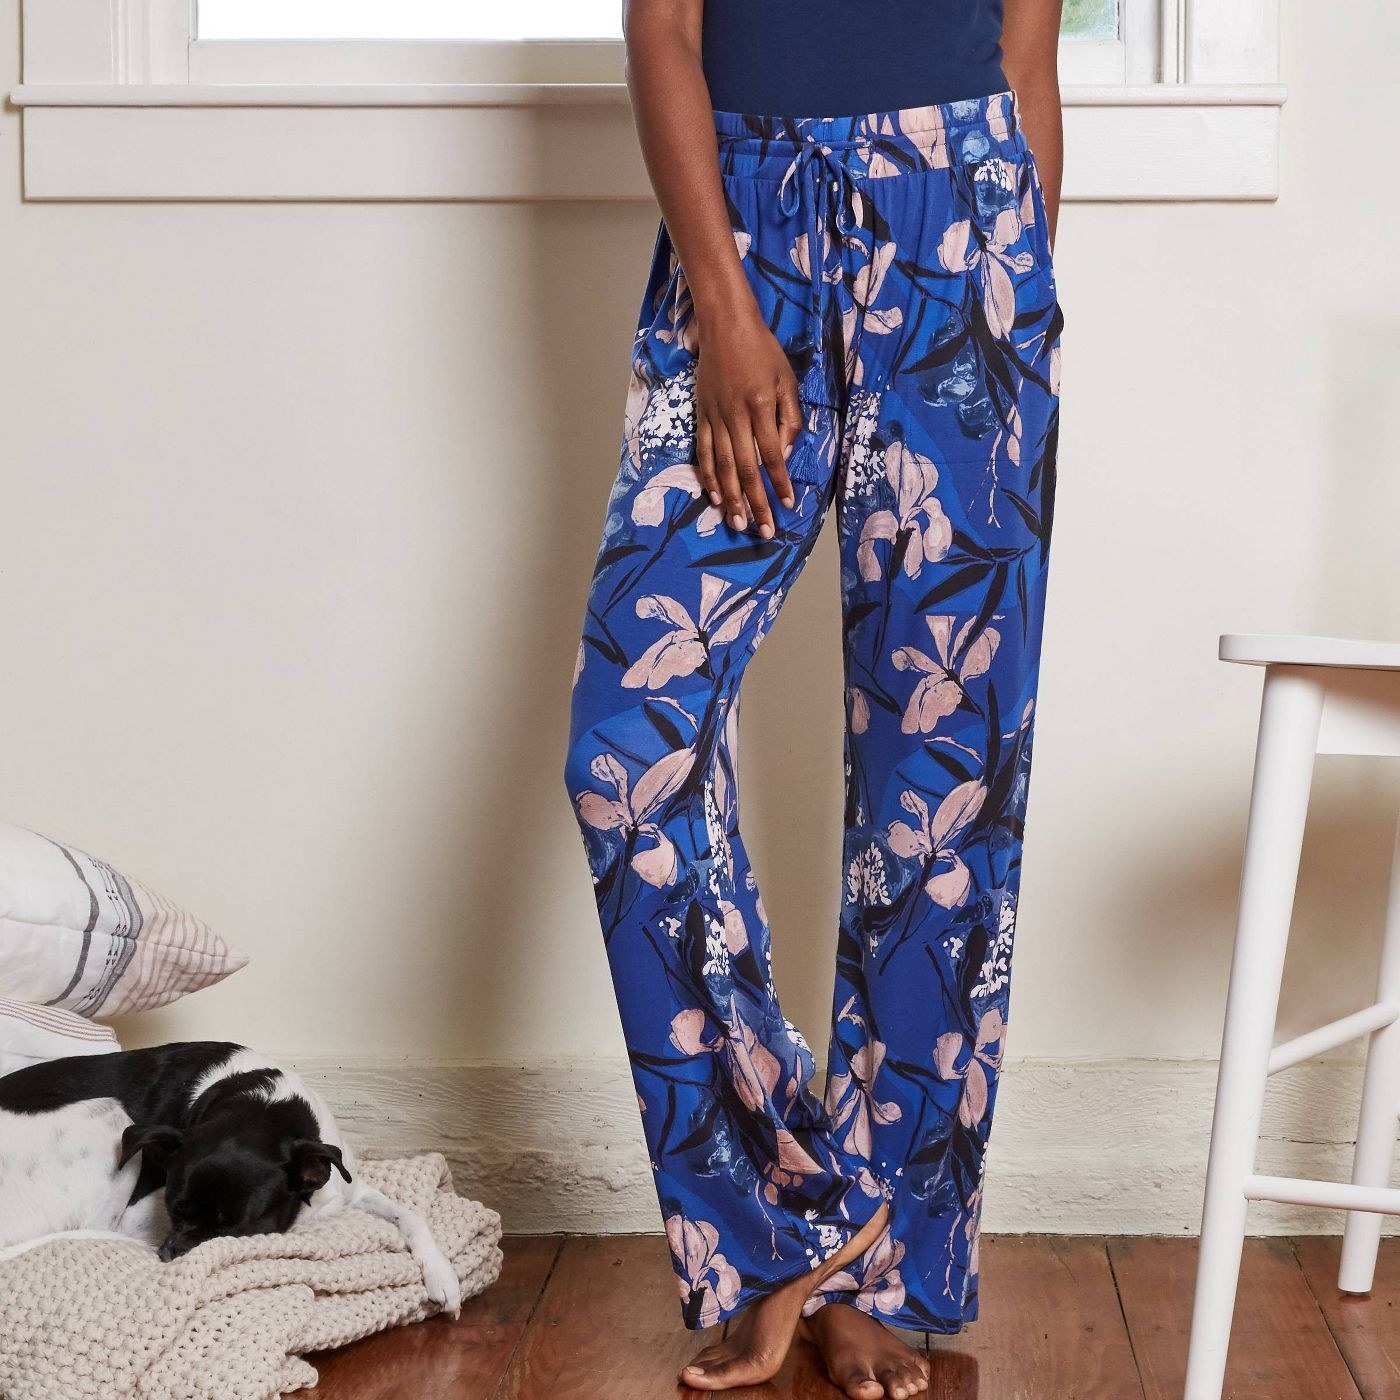 model wearing blue pajama pants with floral design